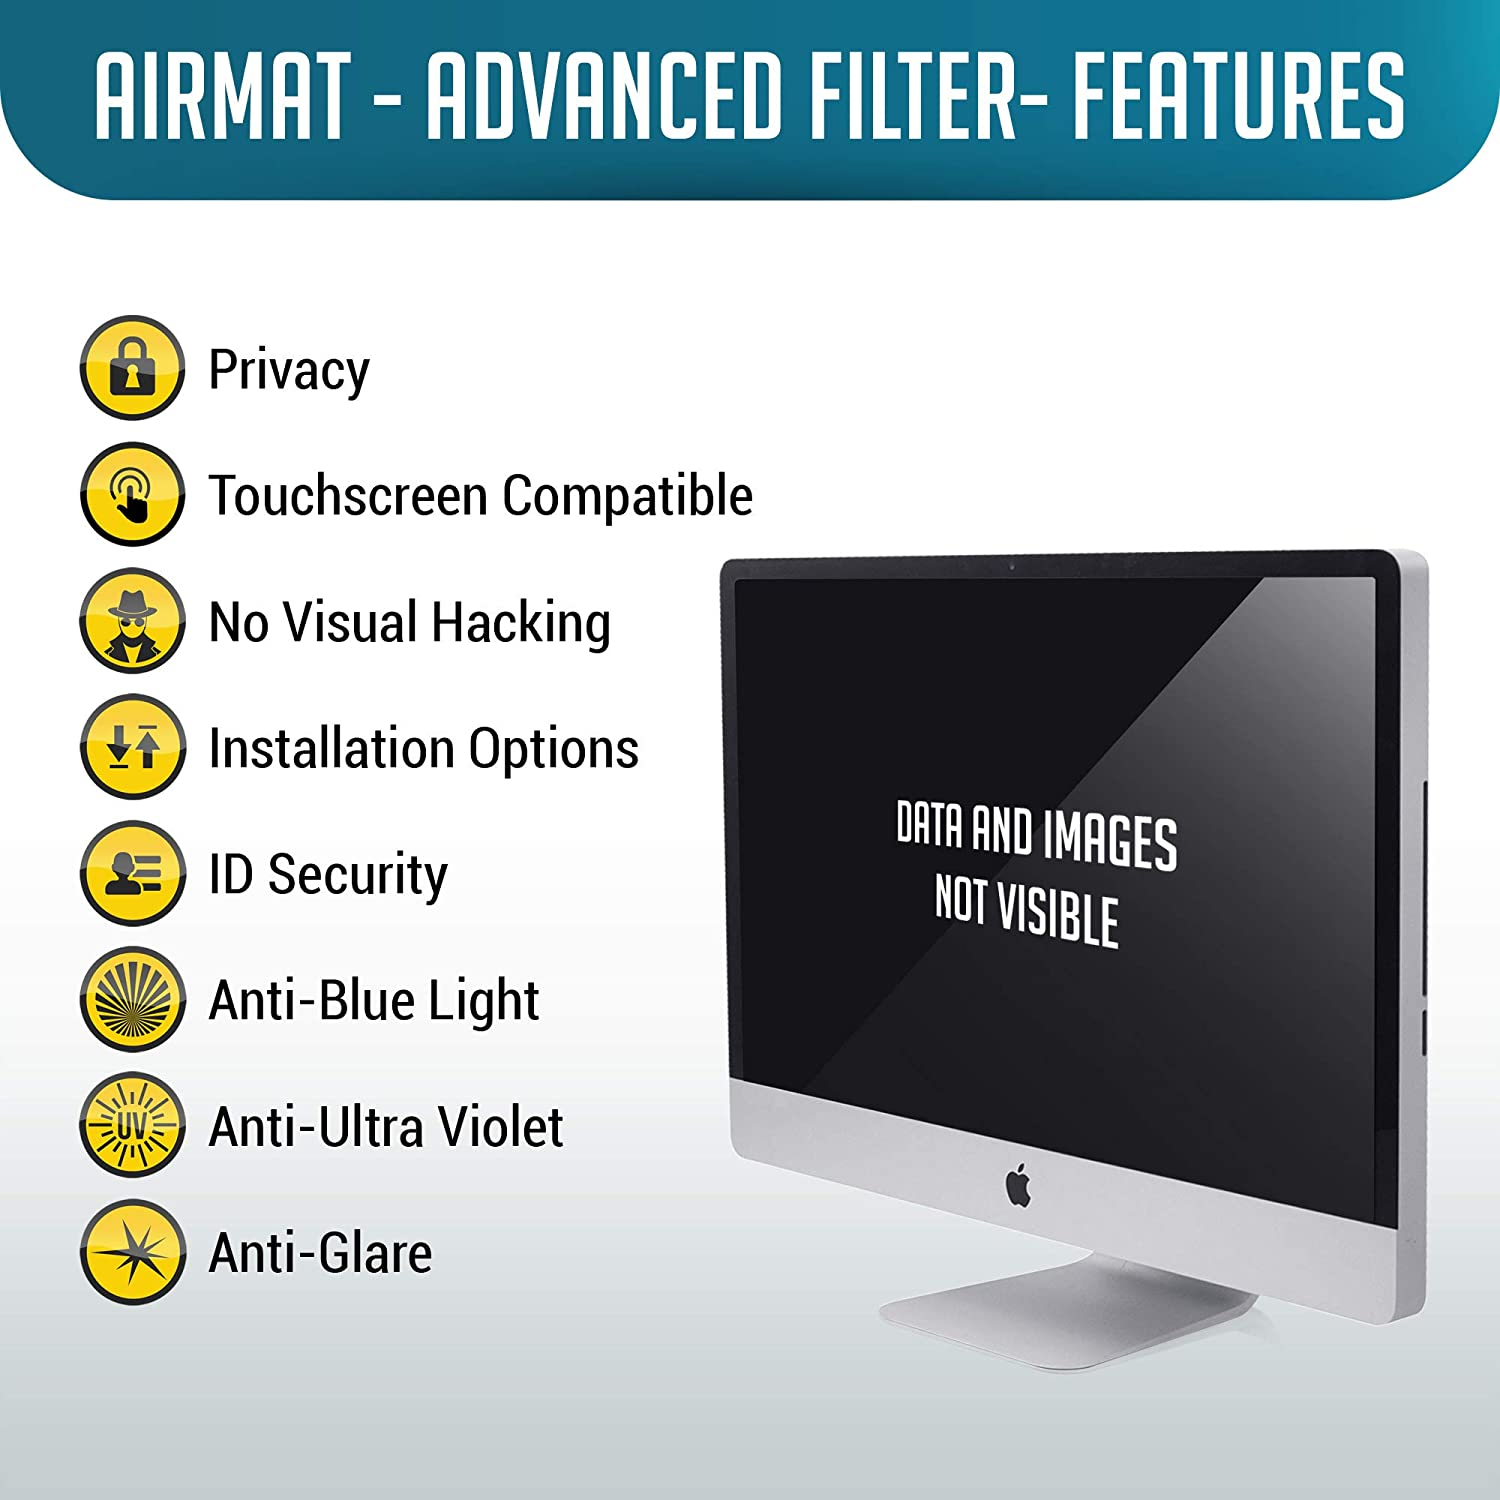 , Black 16:9 Premium Anti Glare Protector Film for Data Confidentiality. 28 Widescreen Computer Privacy Screen Filter for 28 inch Widescreen Display Monitors by AirMat